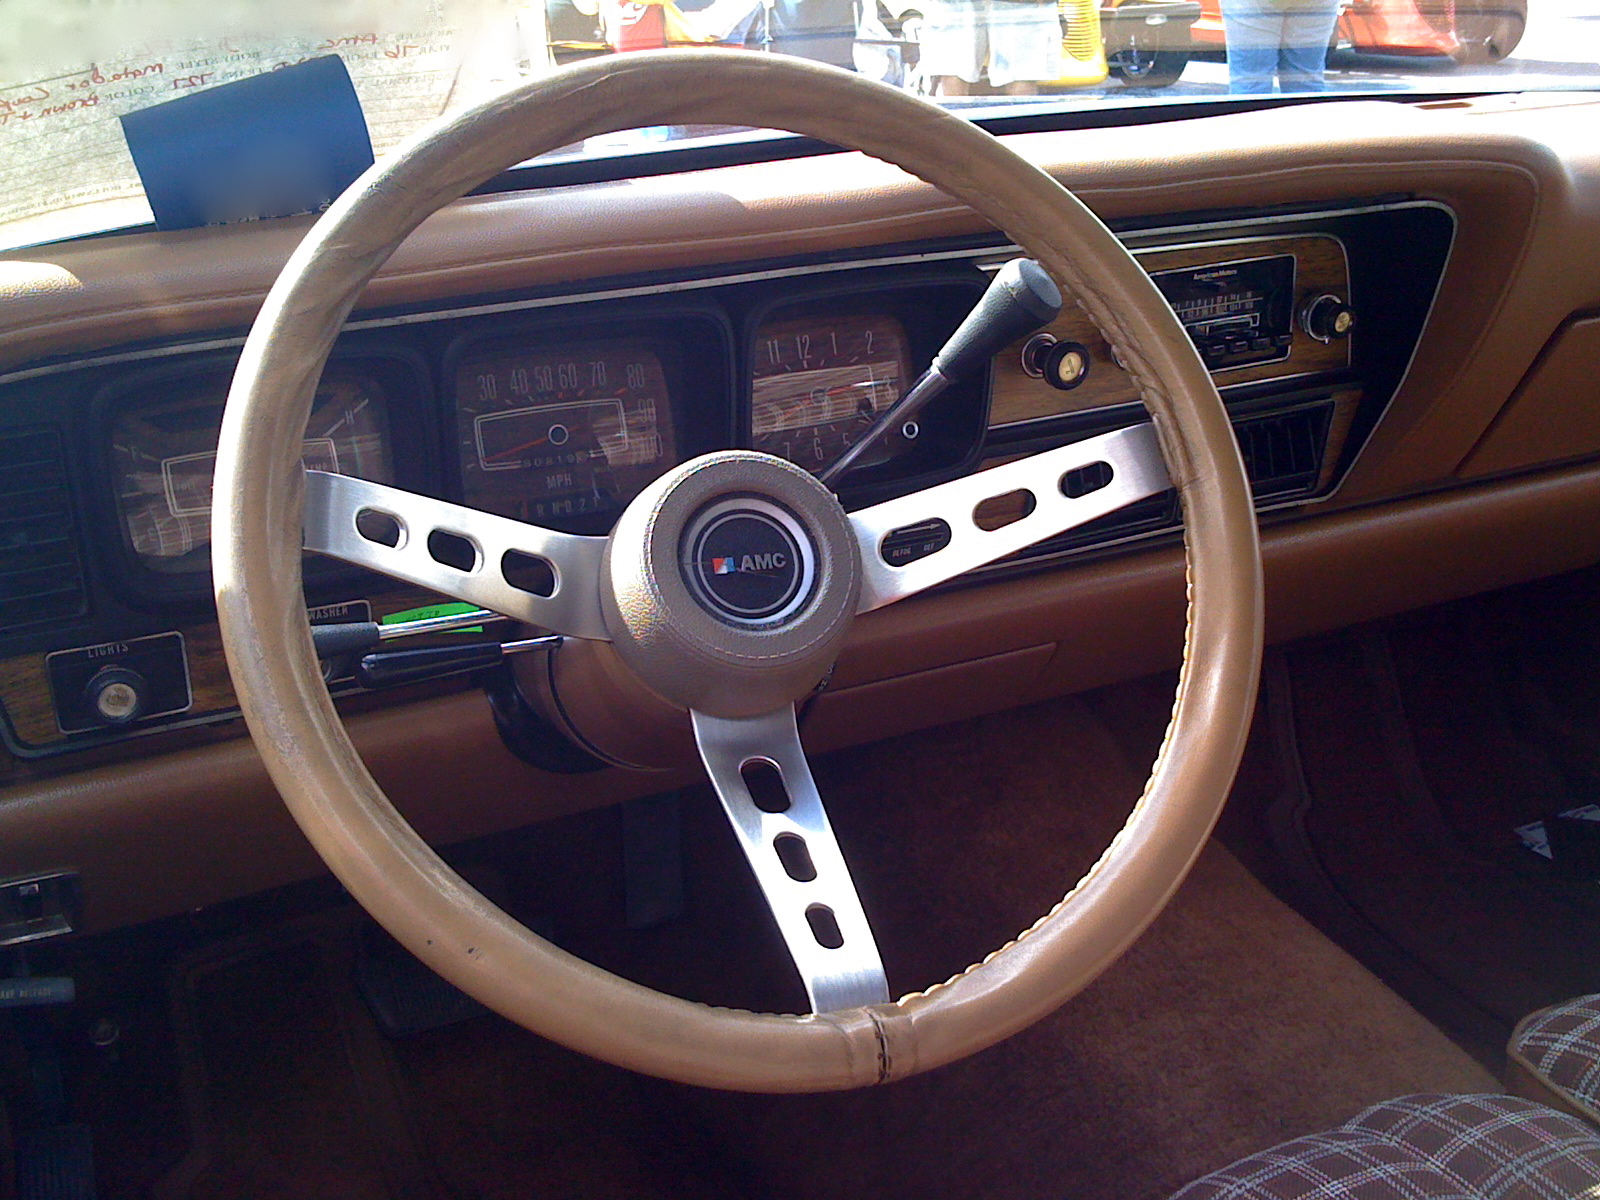 Steering wheel. Photo courtesy: Wiki